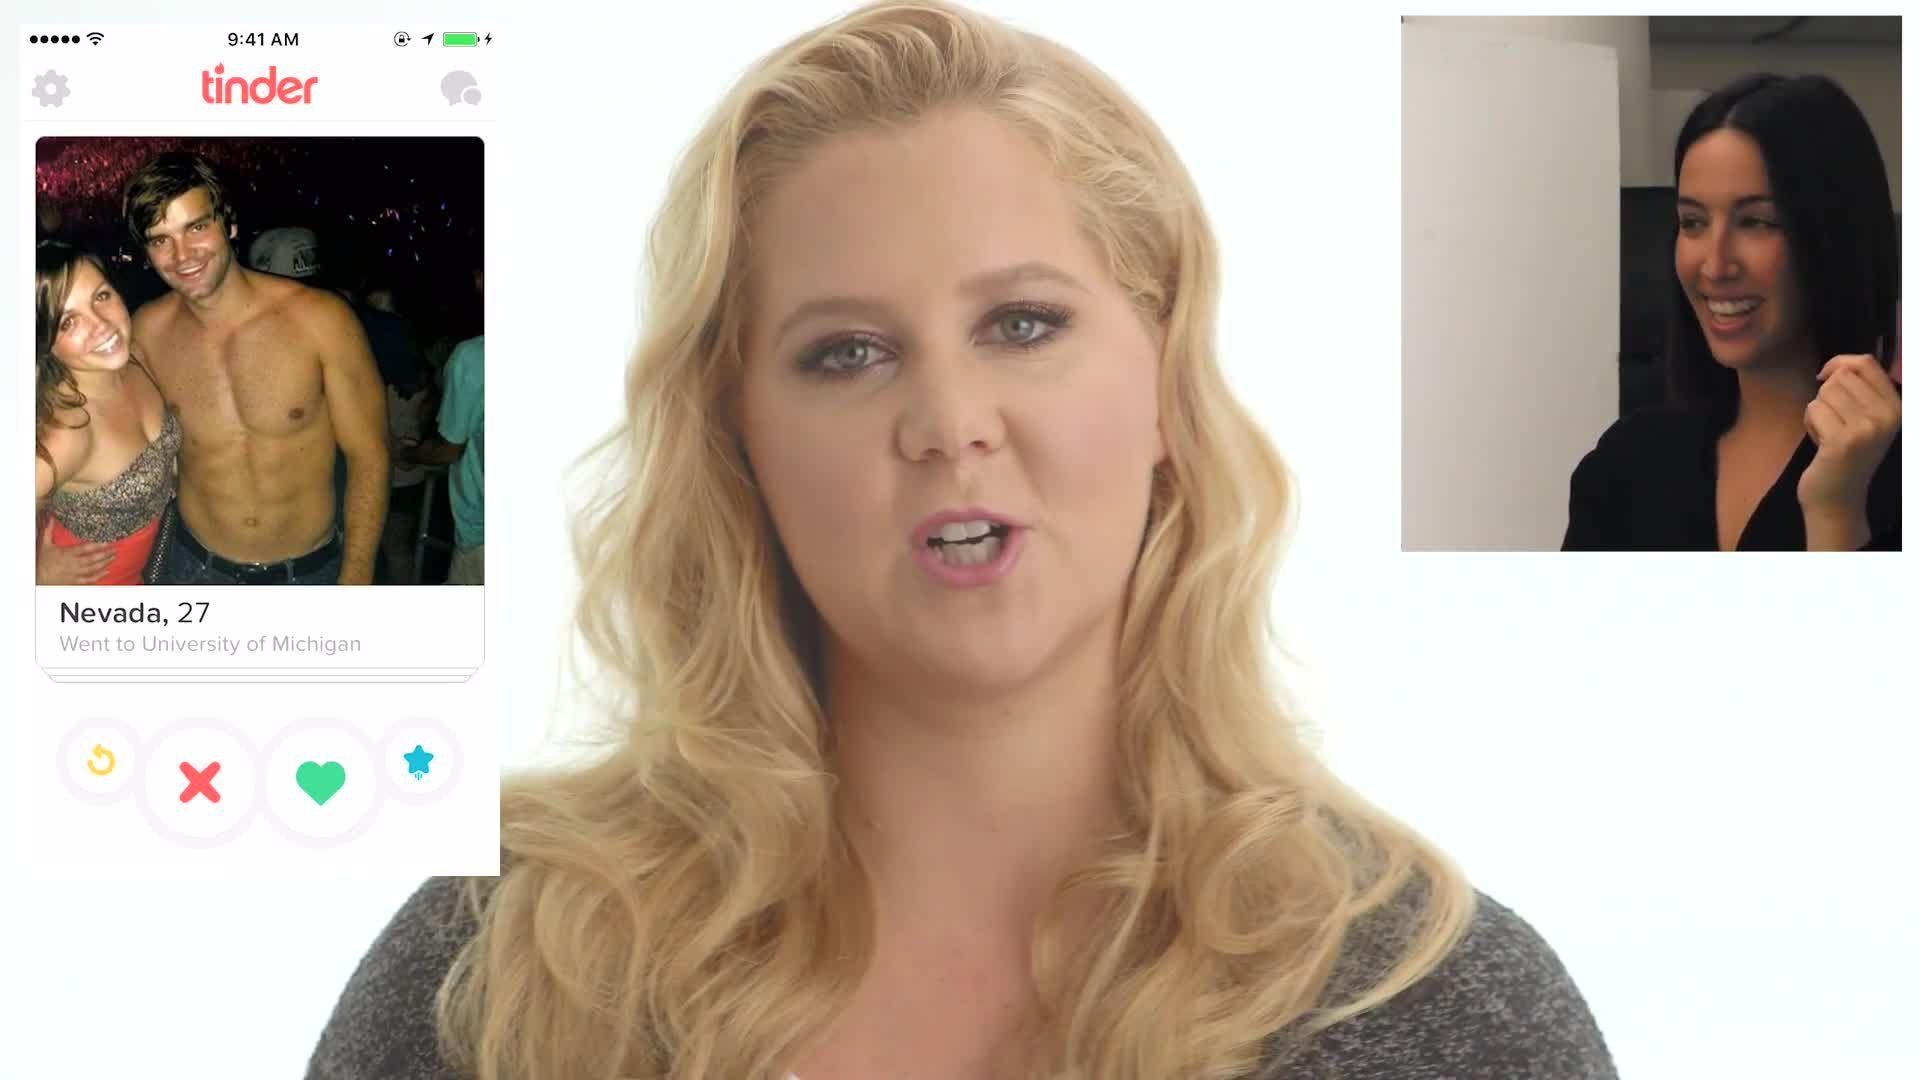 Amy Schumer on Tinder